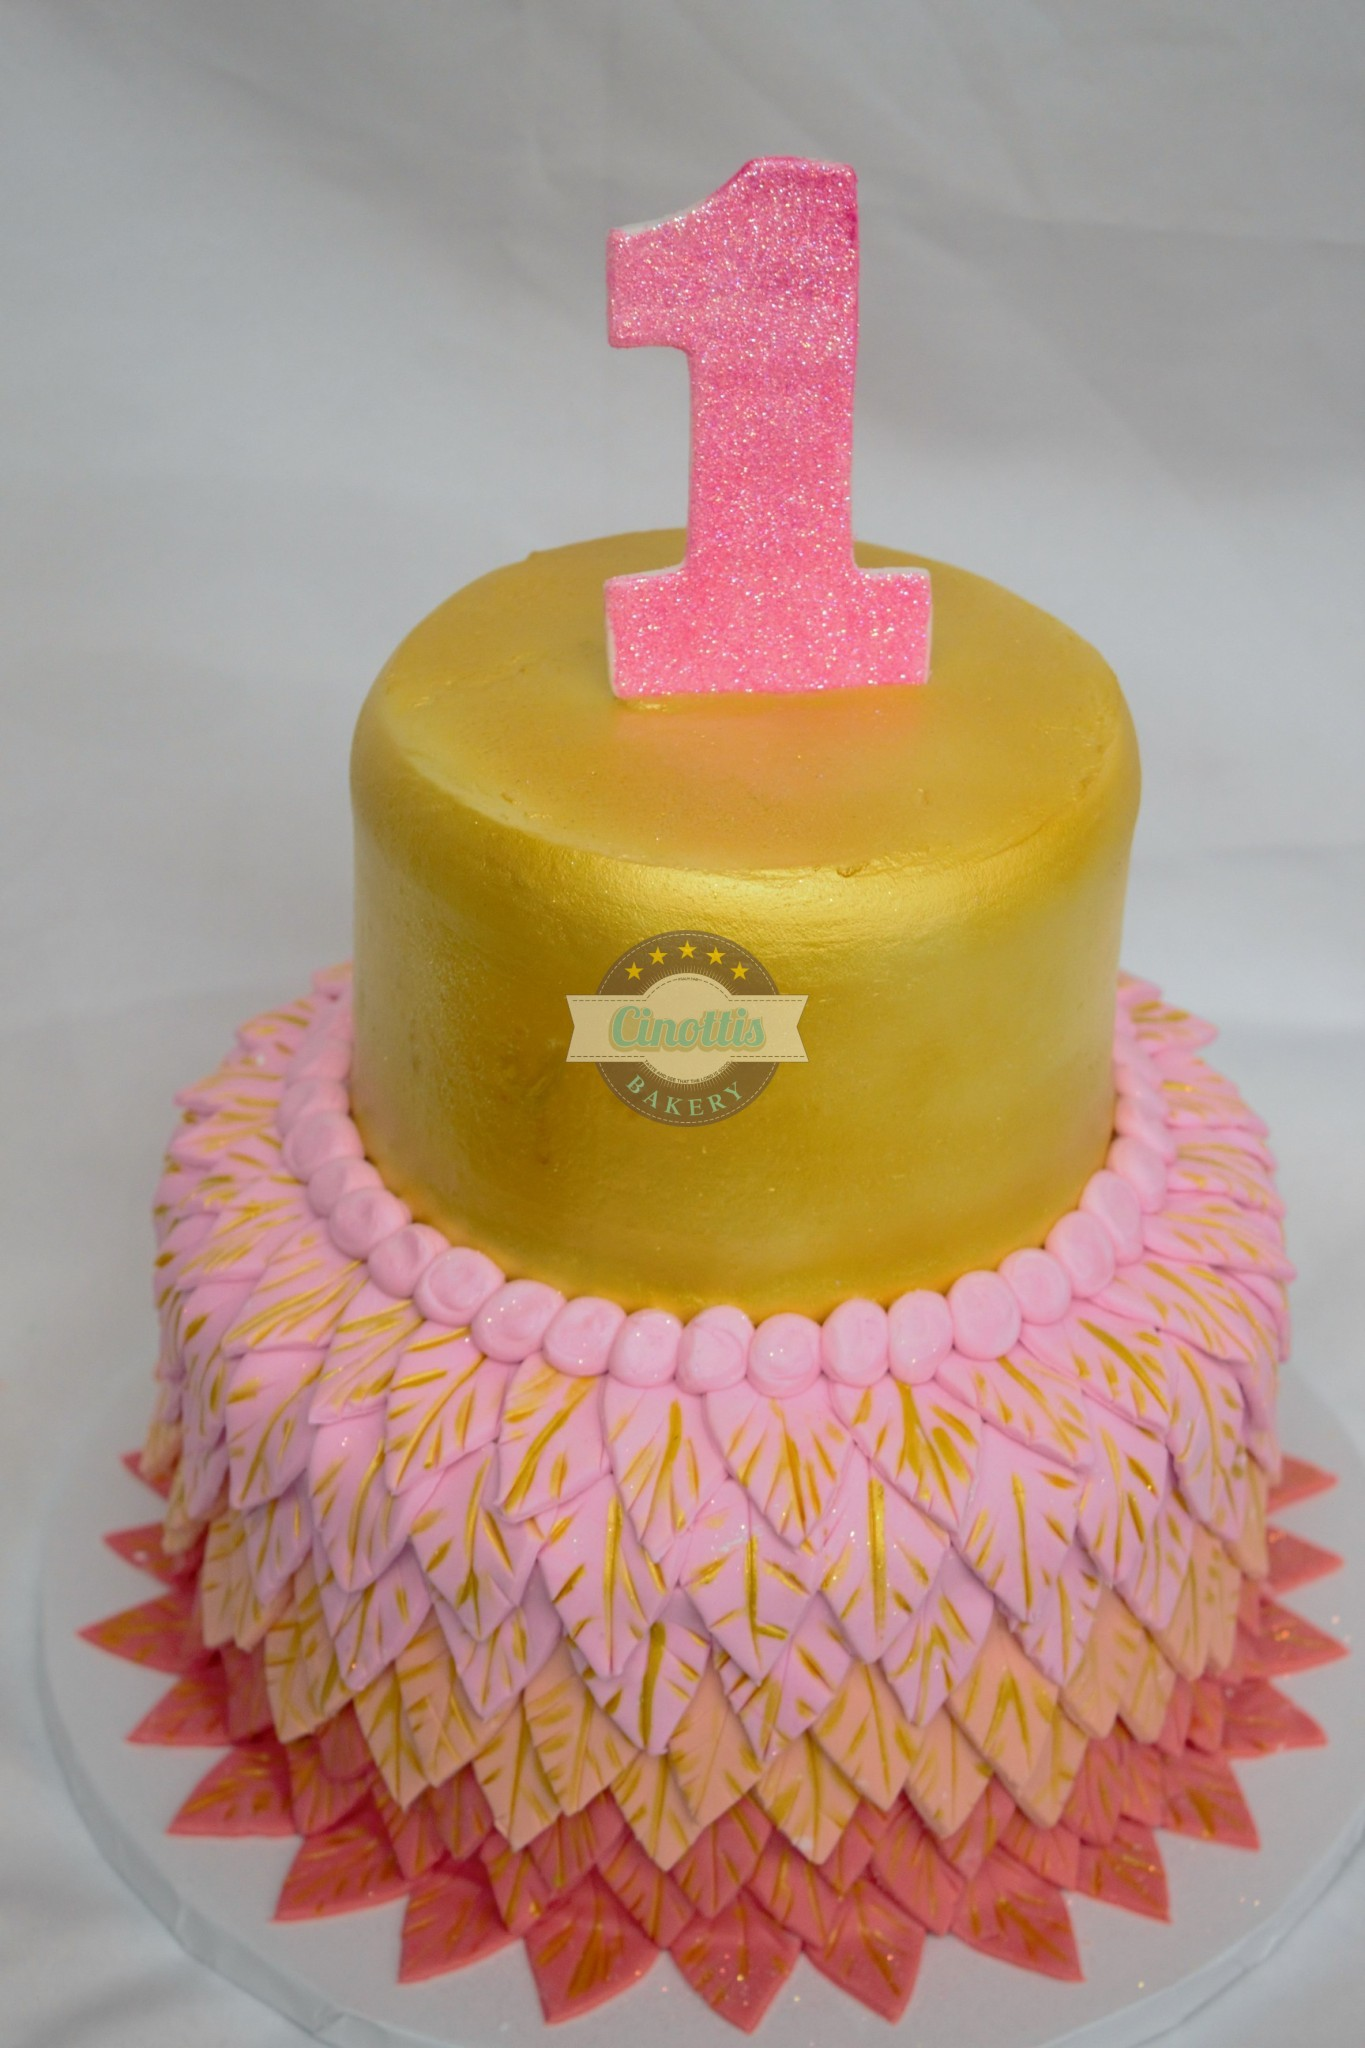 golden frilly flamingo-baby-gold-pink-ombre-feathers-fondant-buttercream-cinottis-bakery-jacksonville-party2